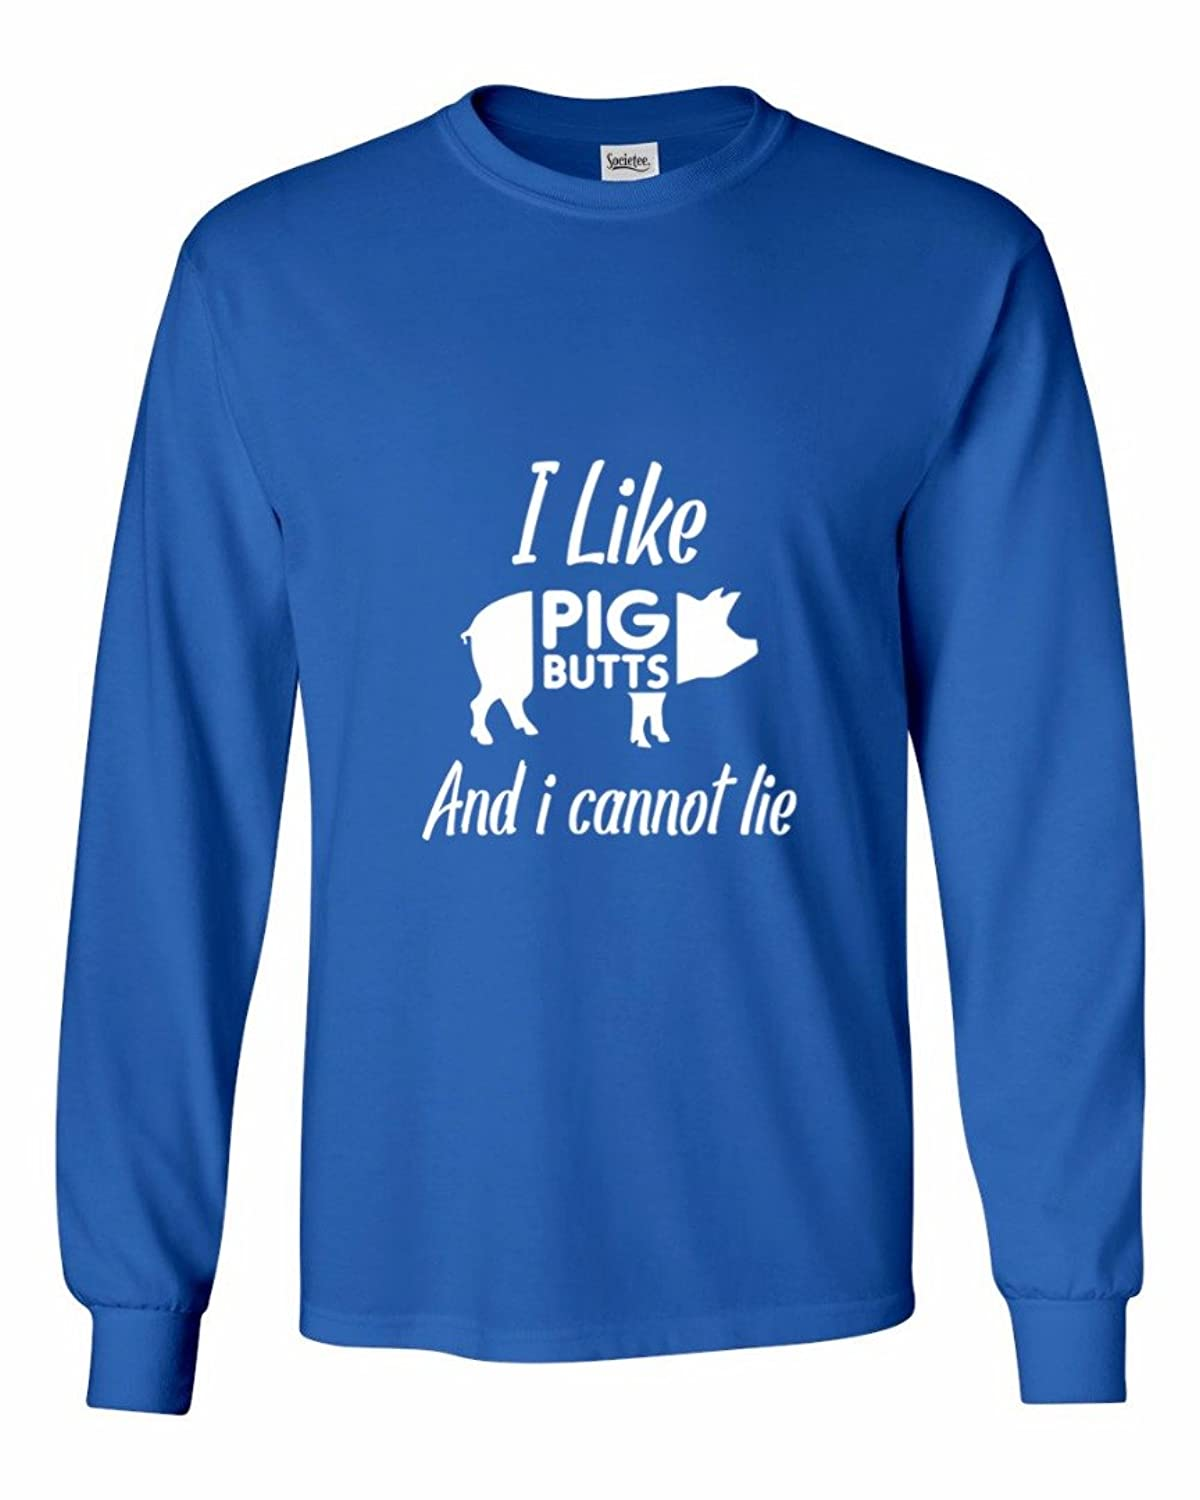 I Like Pig Butts and I Cannot Lie - Men's Long Sleeve T-Shirt